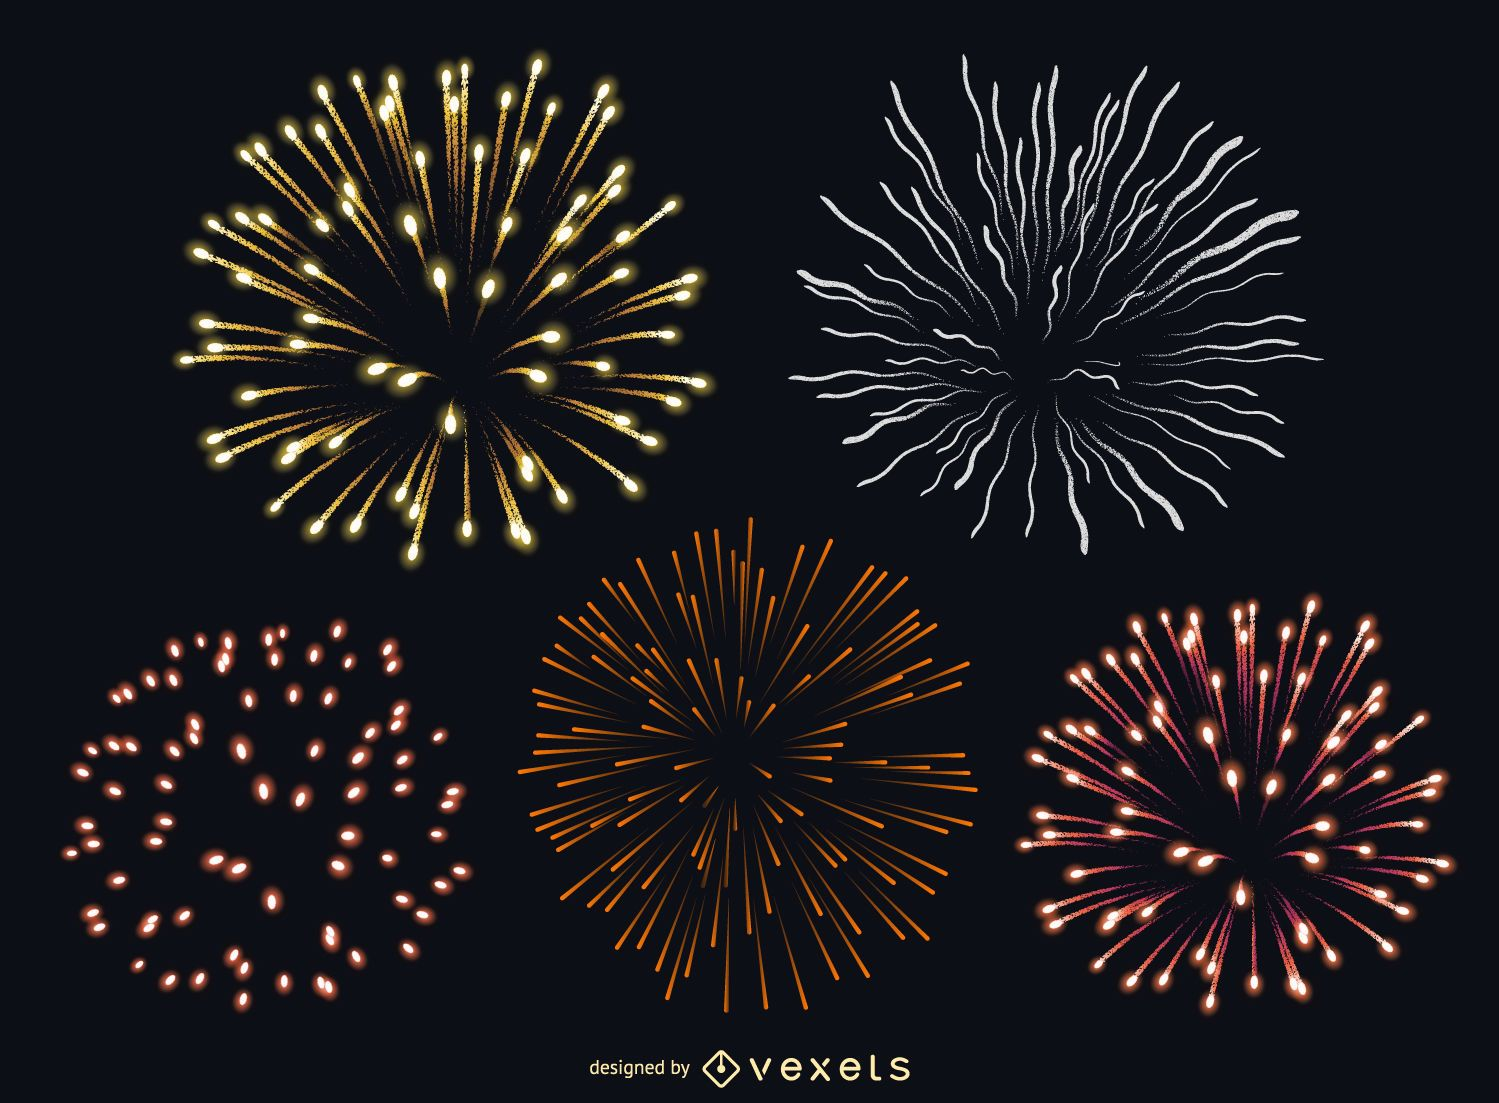 Fireworks templates fireworks free website templates in css html 100 fireworks templates free download in depth fireworks pronofoot35fo Image collections